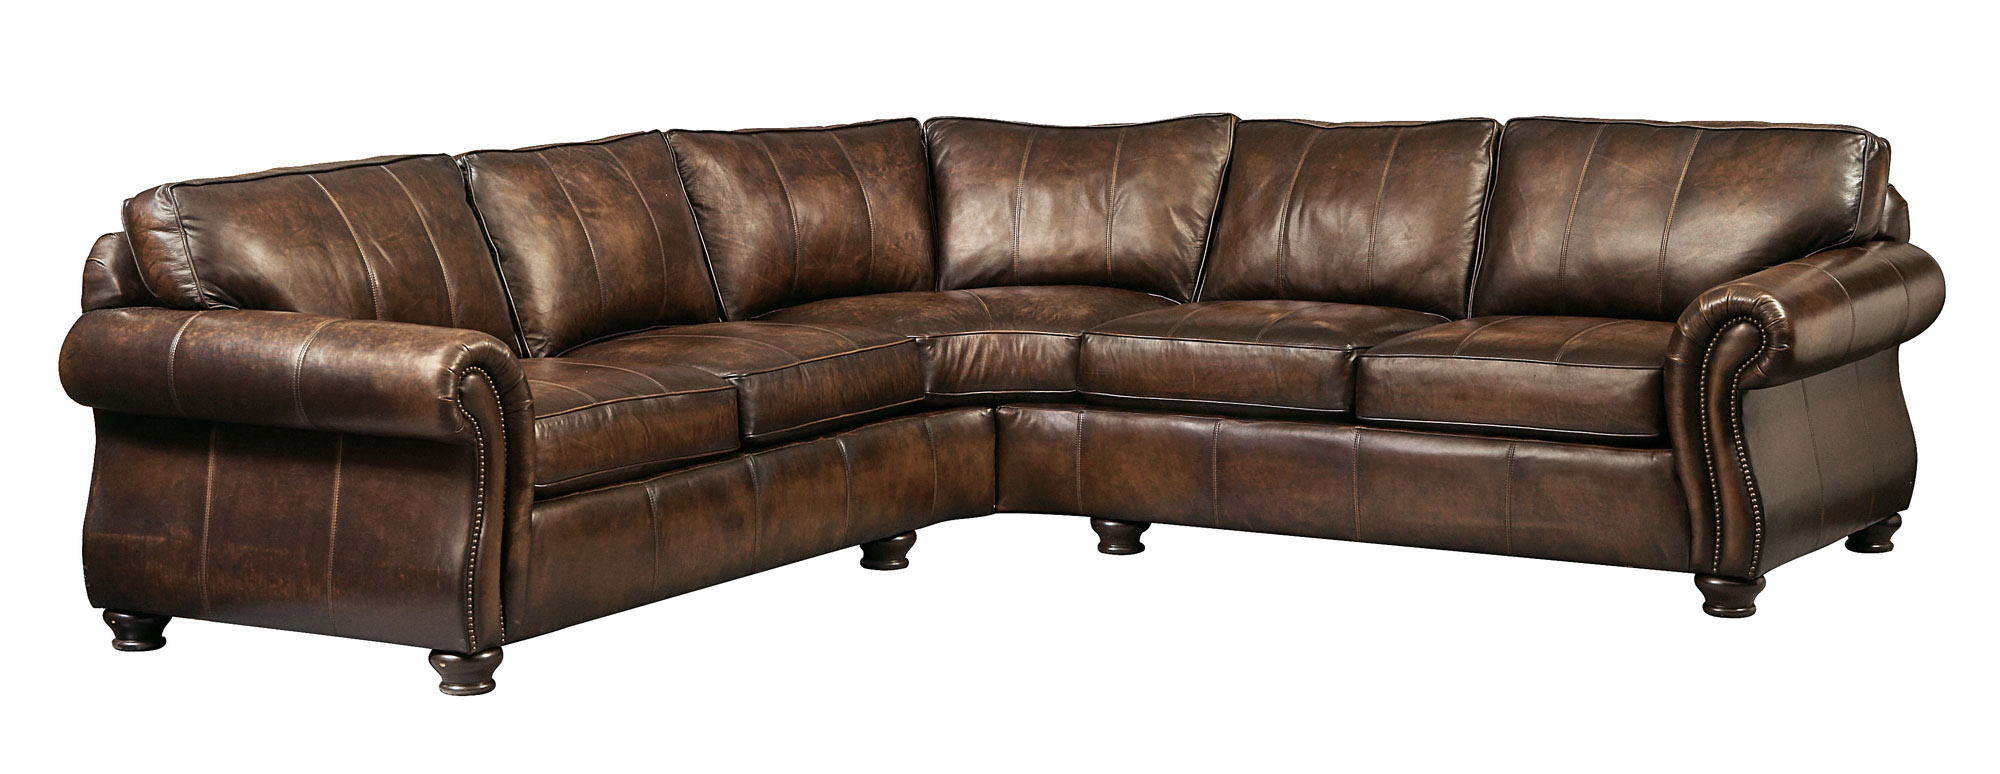 Leather Sectional : Bernhardt